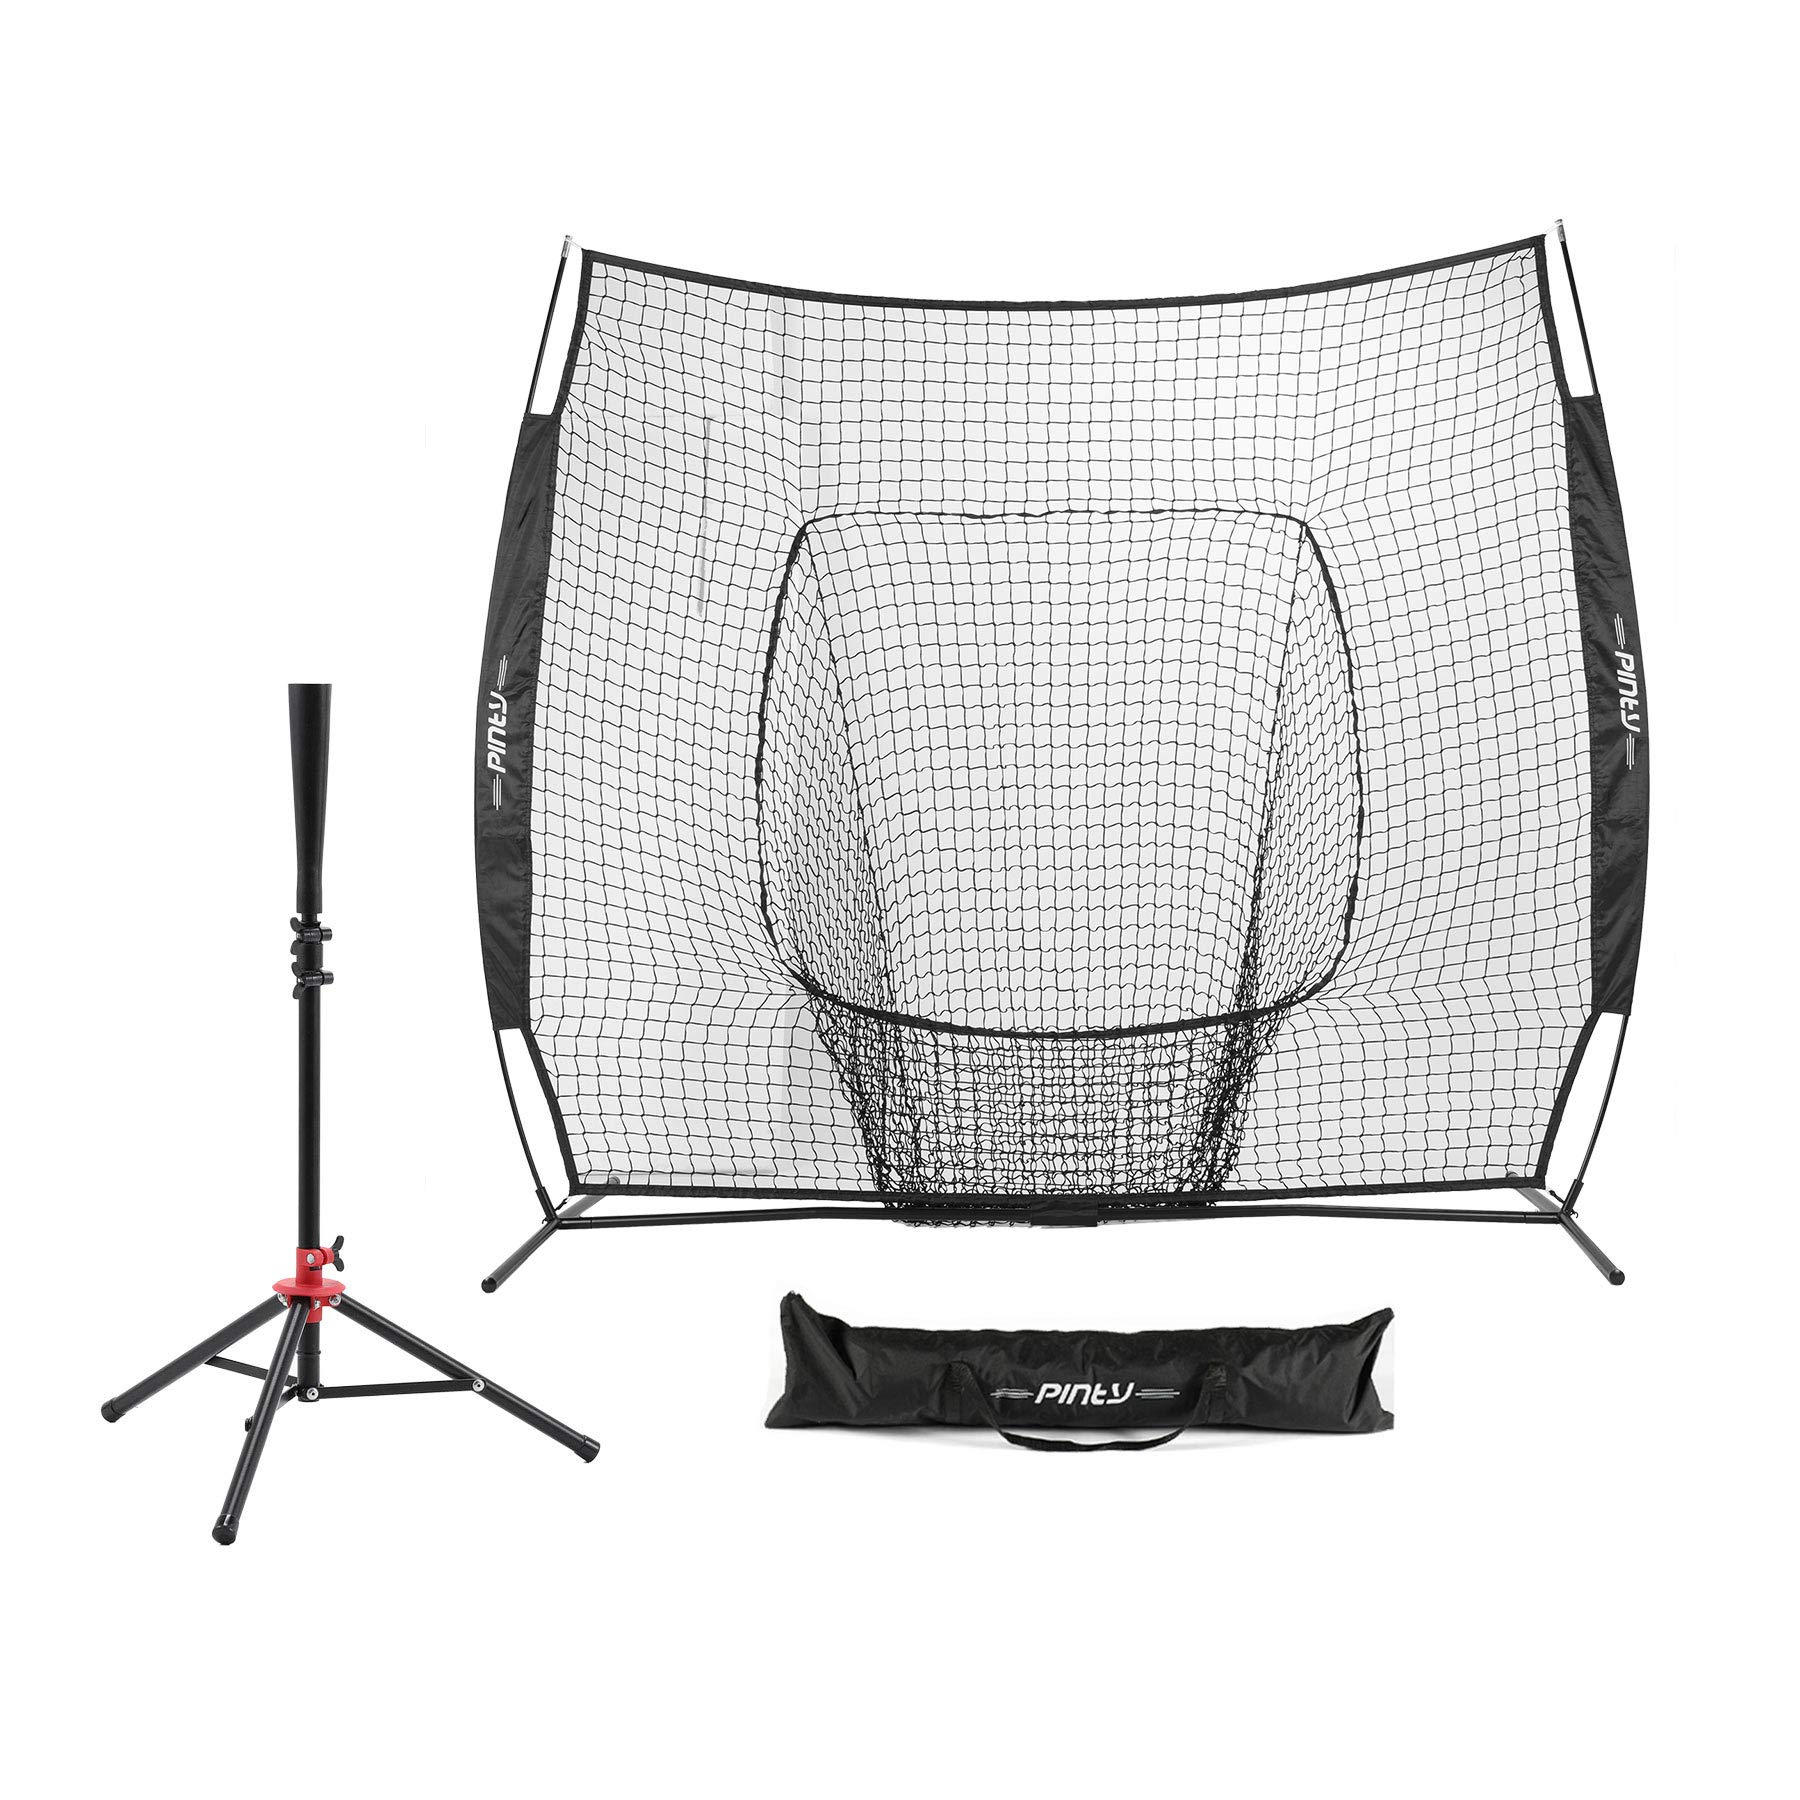 Pinty Baseball and Softball Practice Net 7'×7' Portable Hitting Batting Training Net with Carry Bag & Metal Frame + Baseball Softball Batting Tee (Baseball Net with Batting Tee) (Black) by Pinty